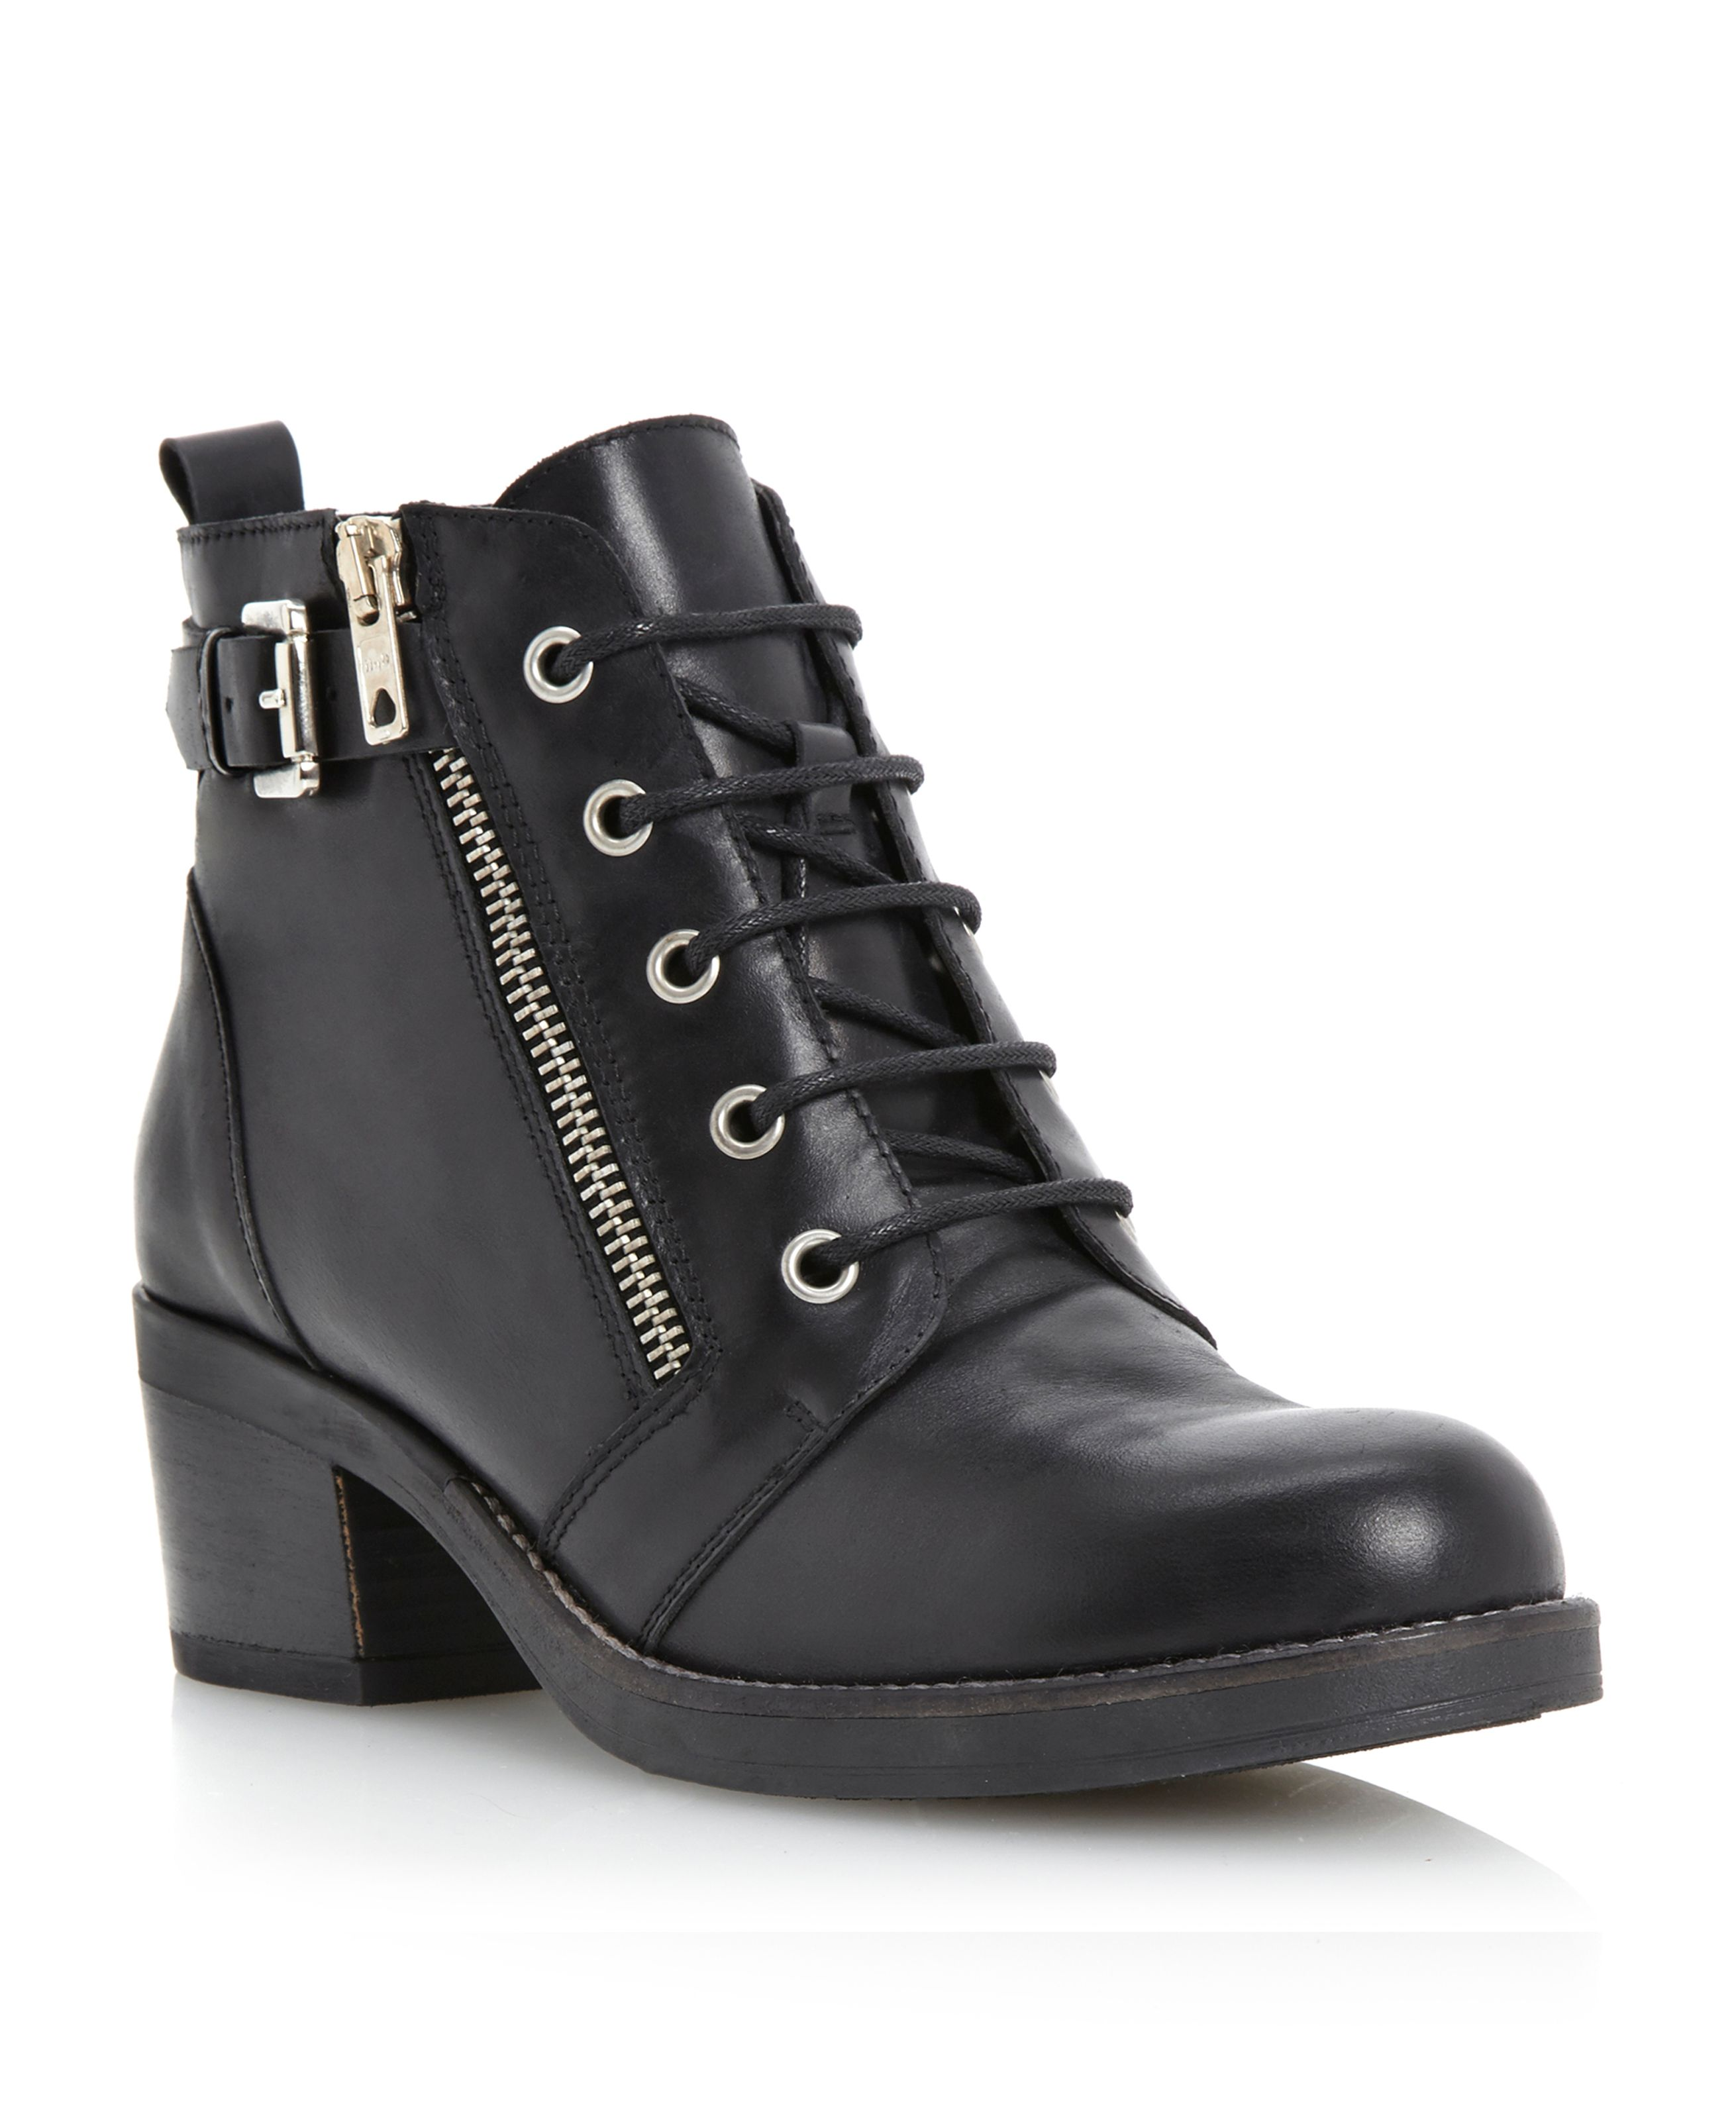 Perdix side zip eyelet lace up boots